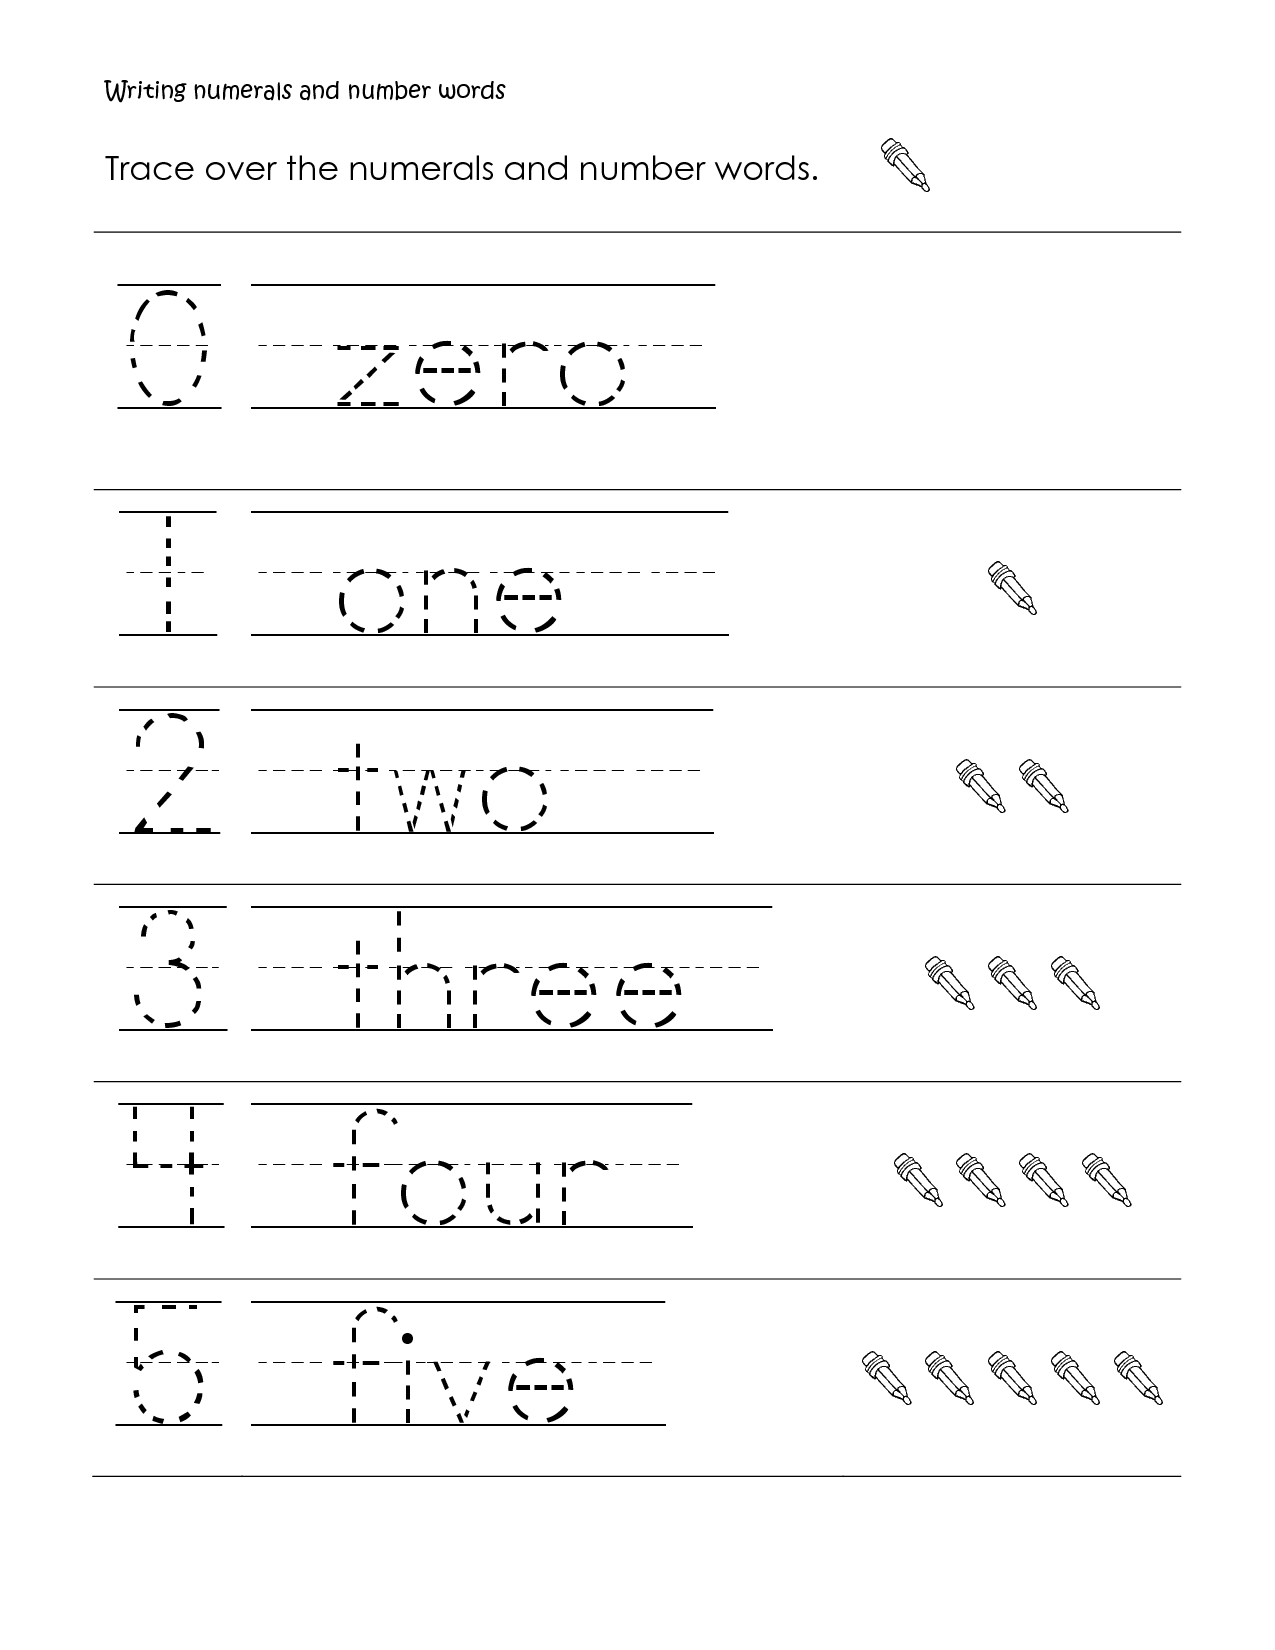 Worksheets Handwriting Worksheets For Kindergarten Names writing numbers worksheets printable 2 pinterest 2